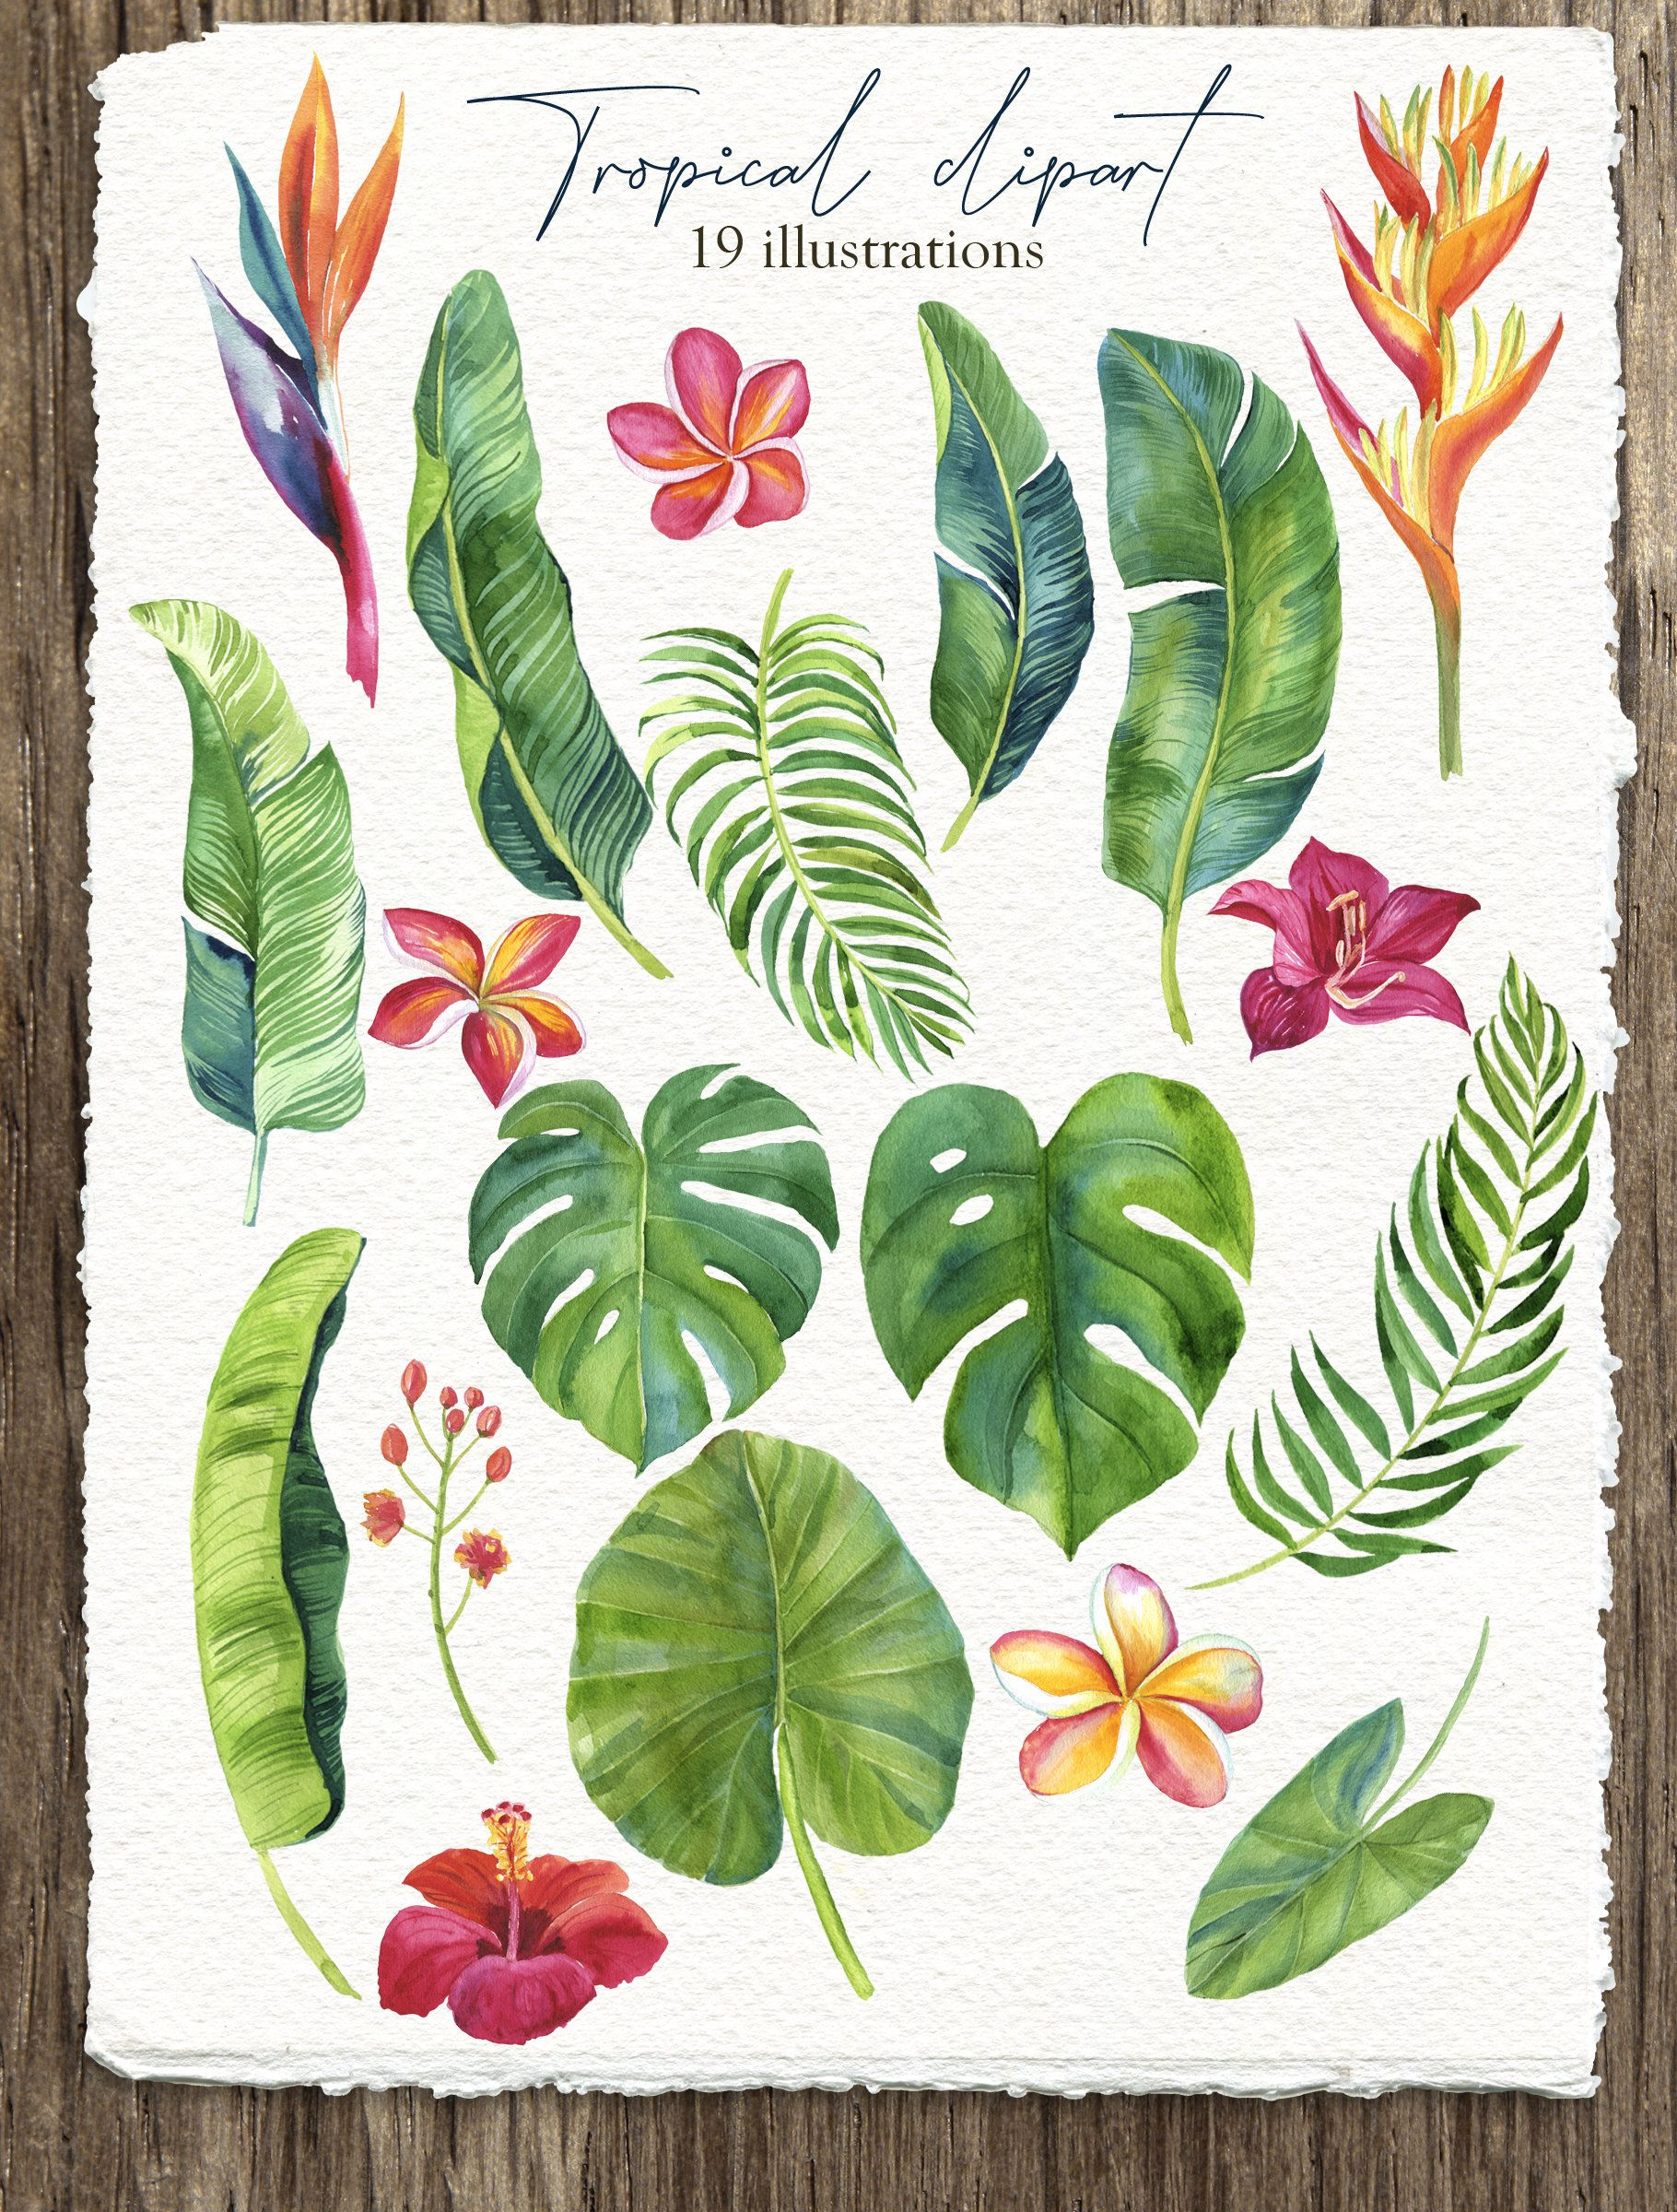 Watercolor floral clipart Digital clipart Tropical Flowers Leaves Monstera Printable digital download Wedding Birthday PNG 19 files -   18 tropical plants Watercolor ideas